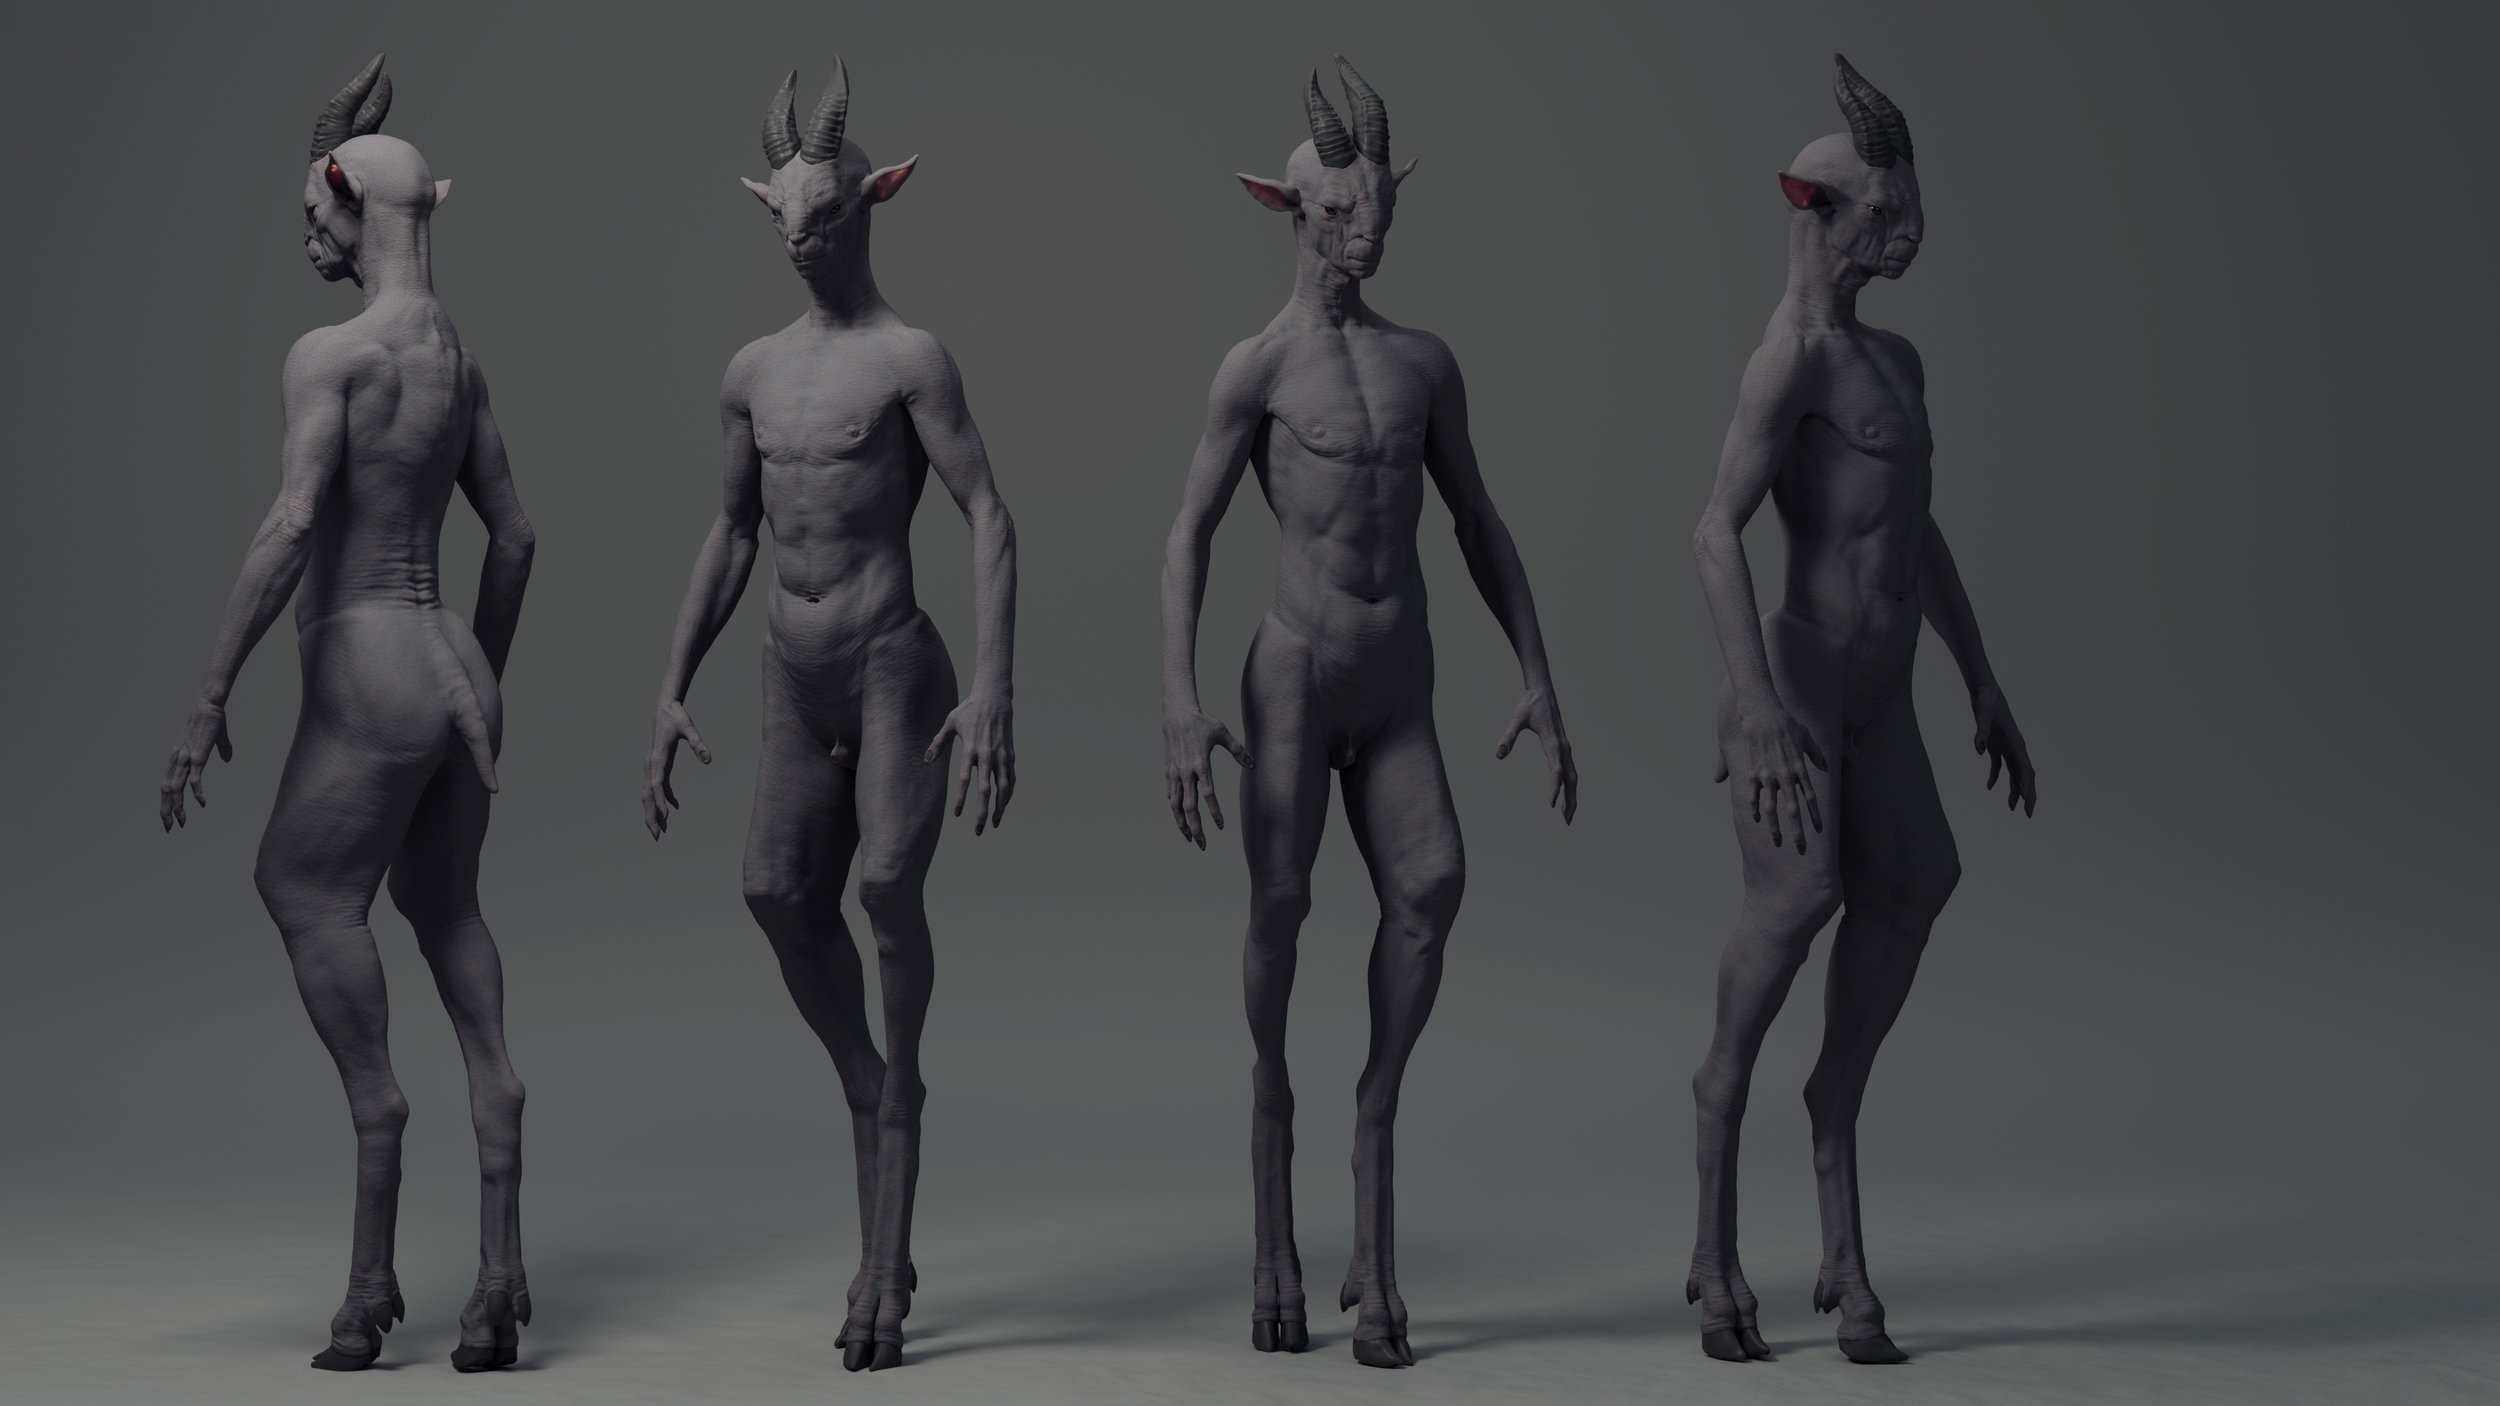 WiP shots of a sculpt I'm working on. Trying to resolve goats leg on a humanoid in a interesting way.